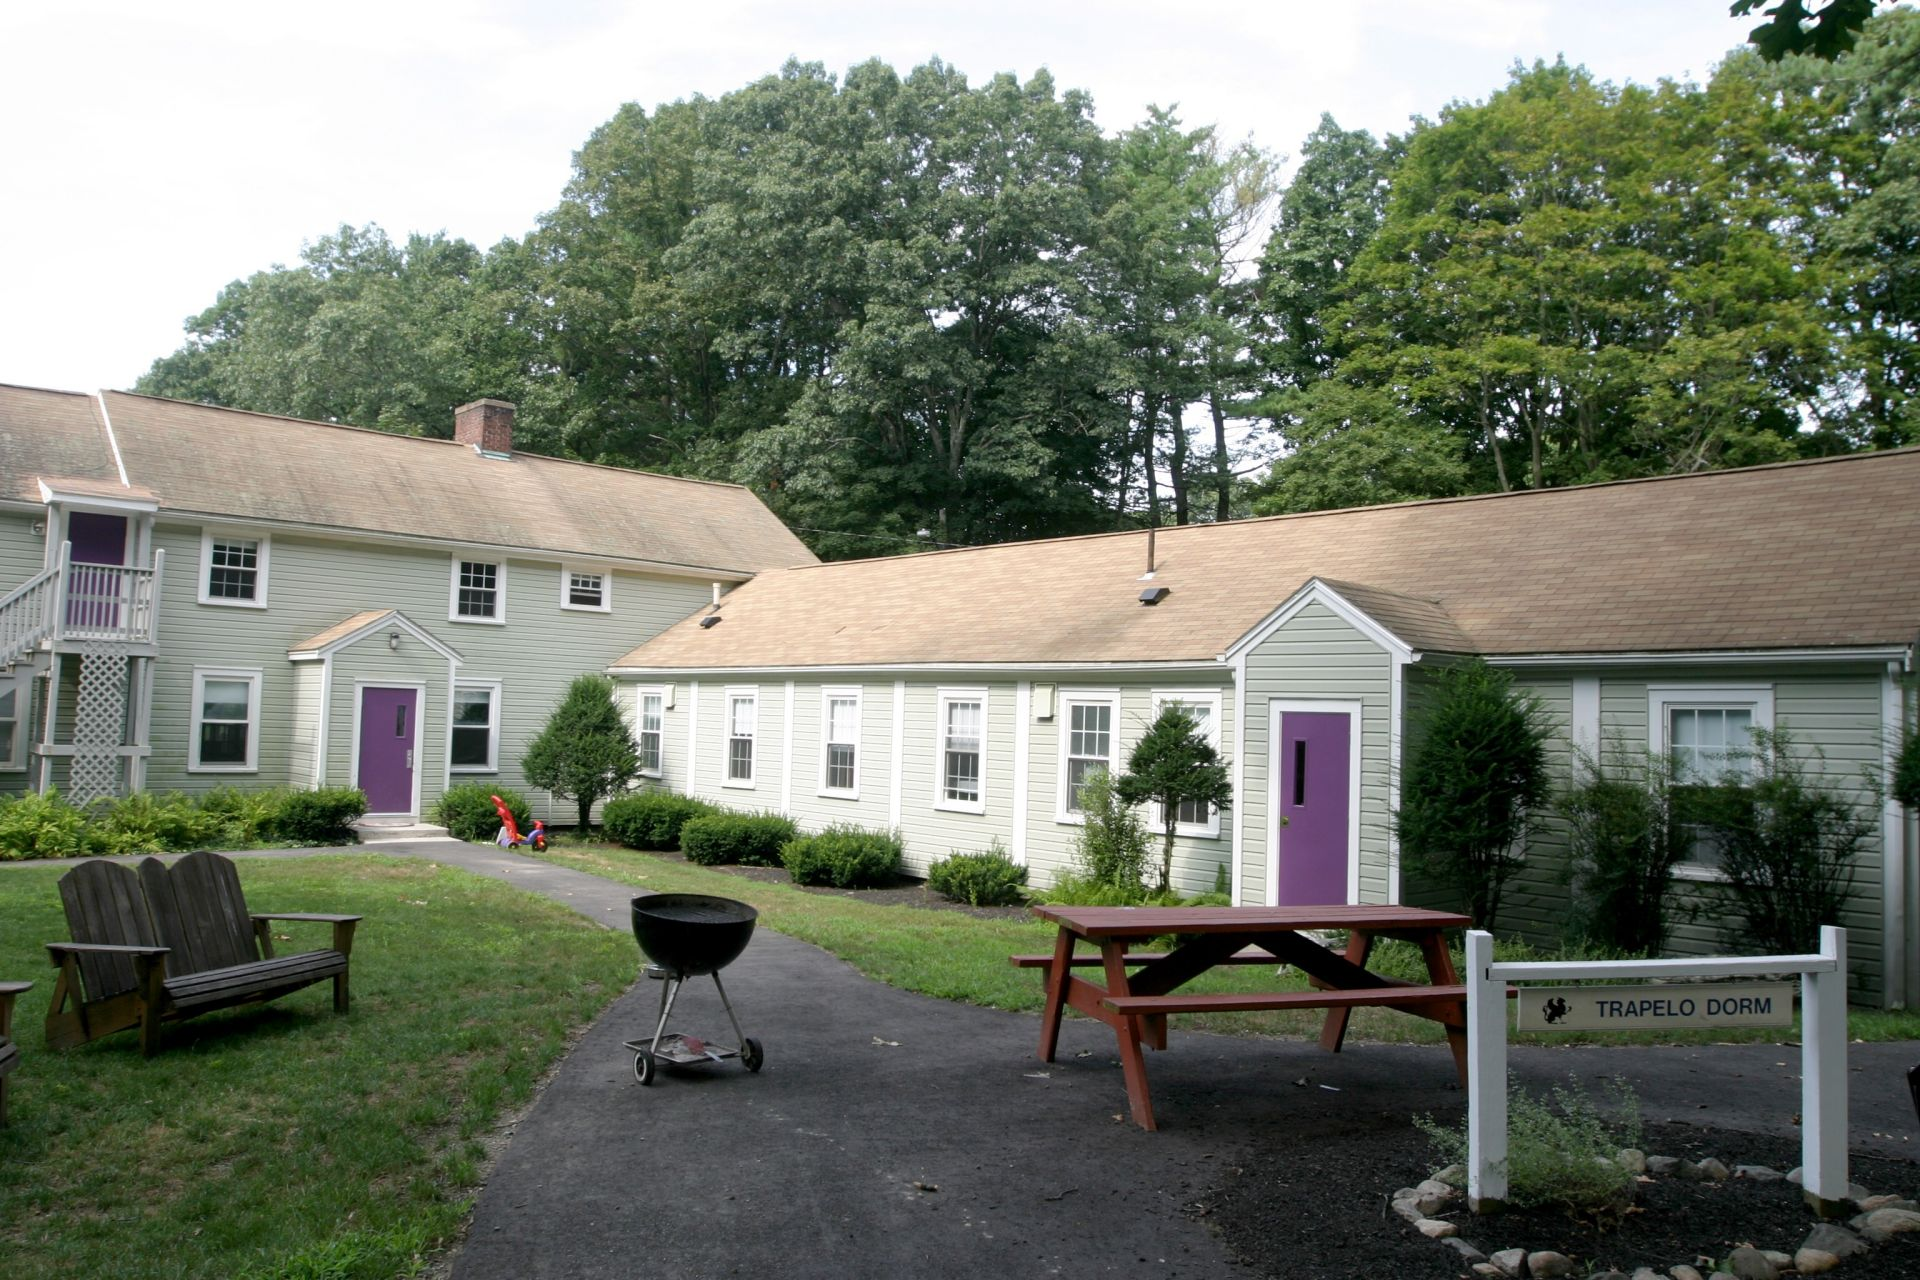 The Trapelo dormitory is home to approximately 22 boys and two sets of dorm parents.